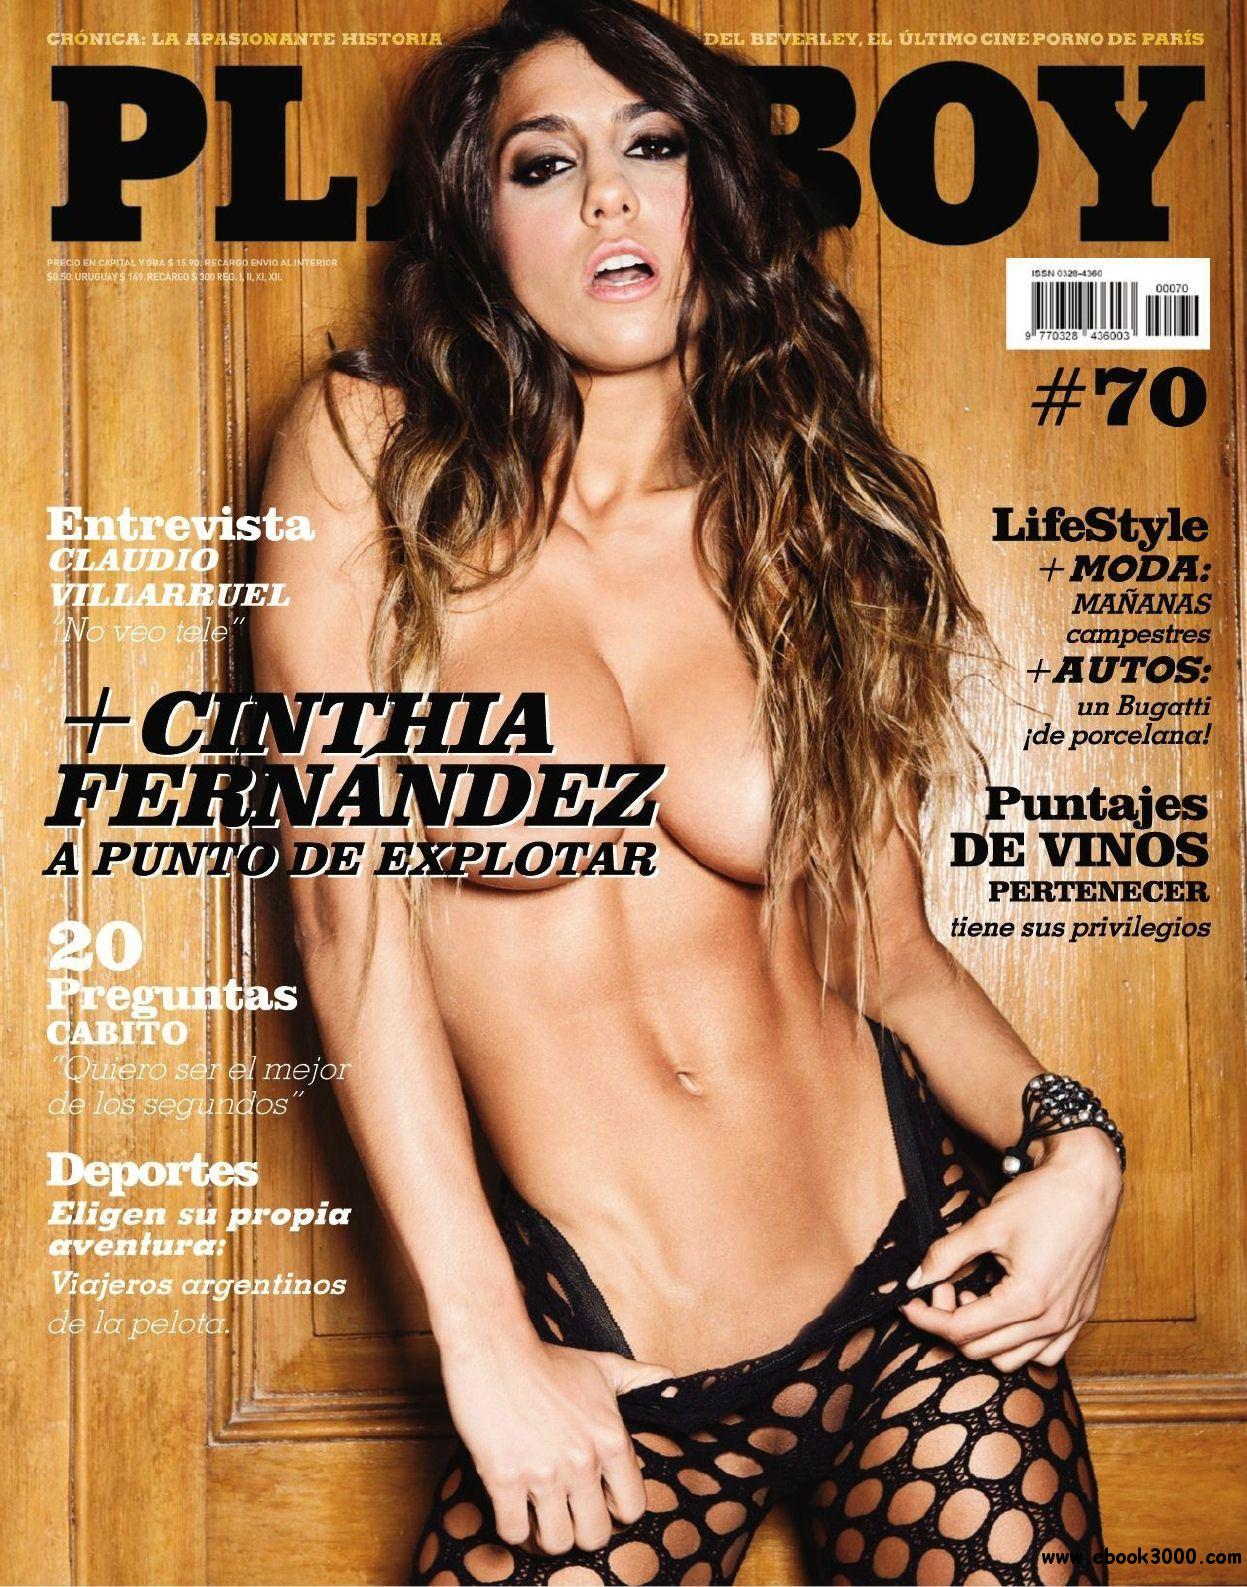 Playboy Argentina - October 2011 free download